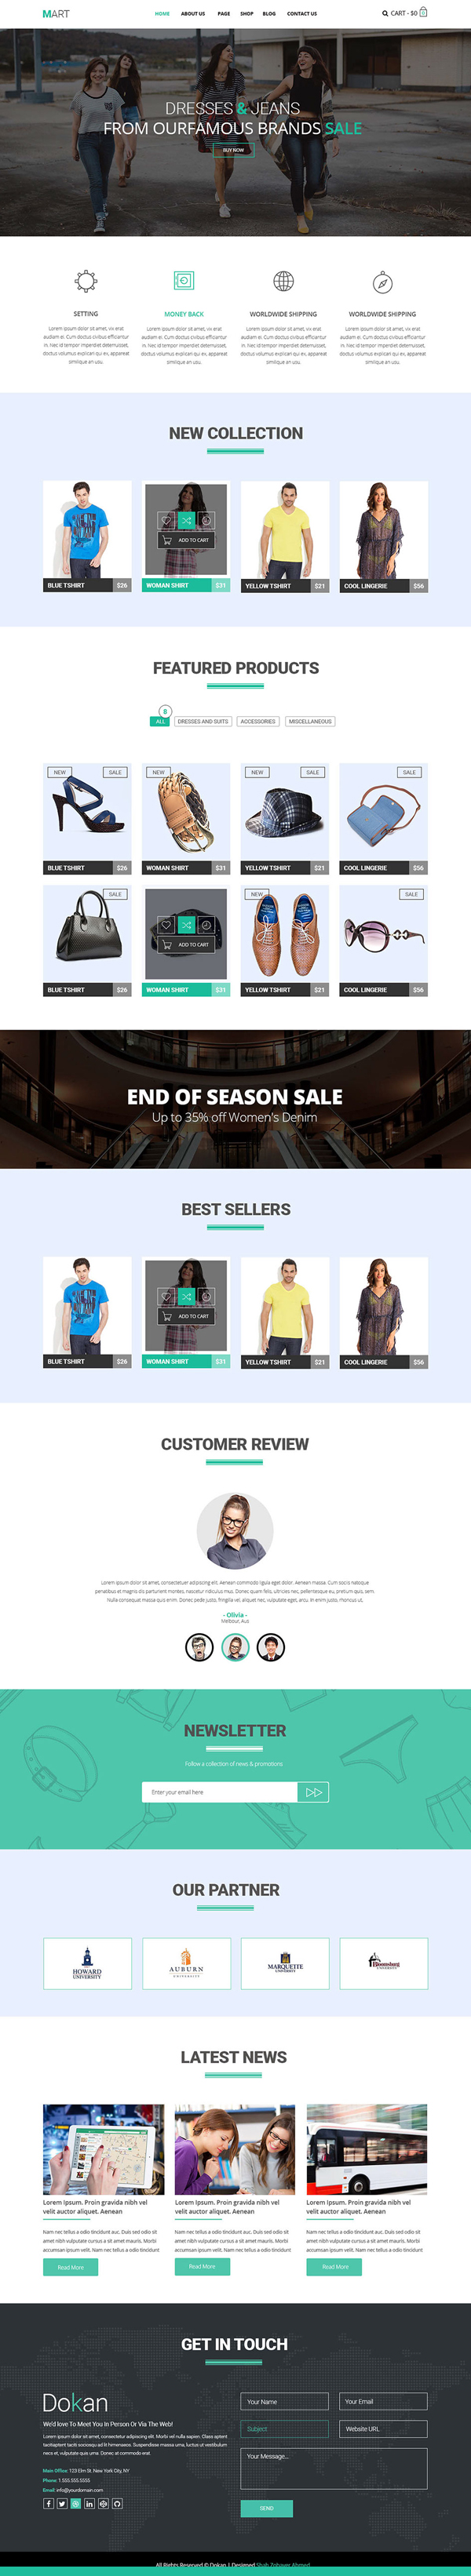 Website Templates Mart  Ecommerce Website Template Free Psd & Html  Psd Templates